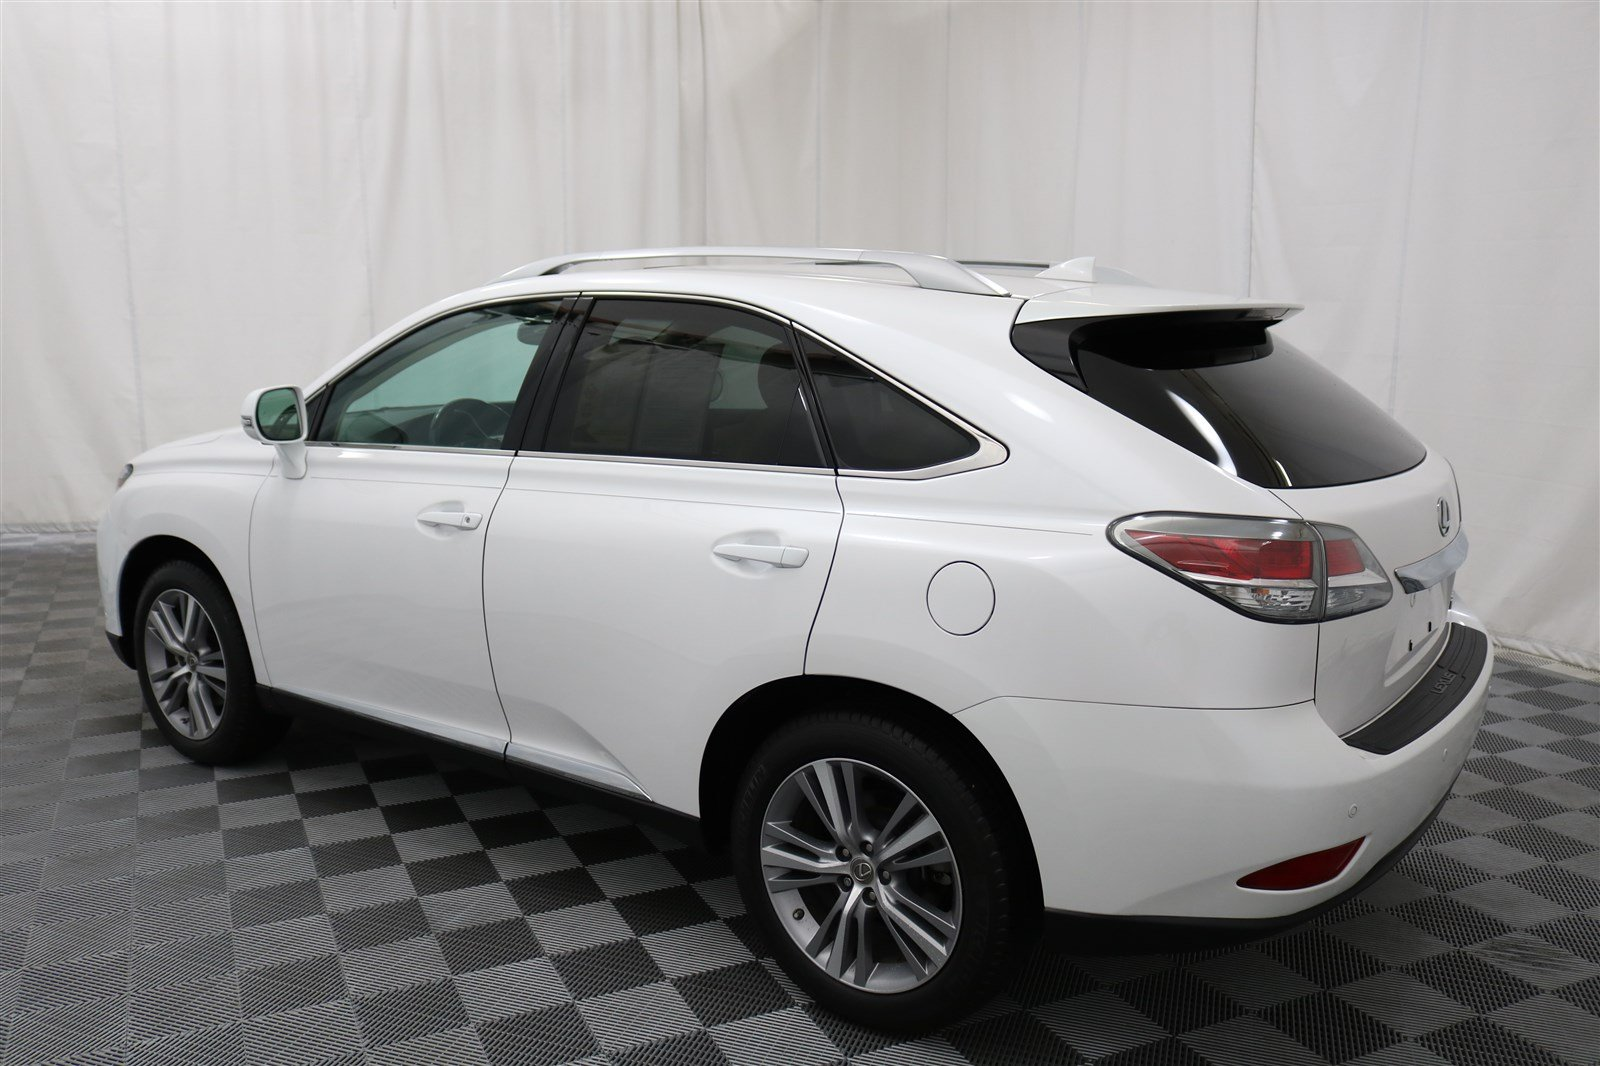 cpo ksl benefits lexus of owned vehicles our browse pre ken a shaw certified inventory